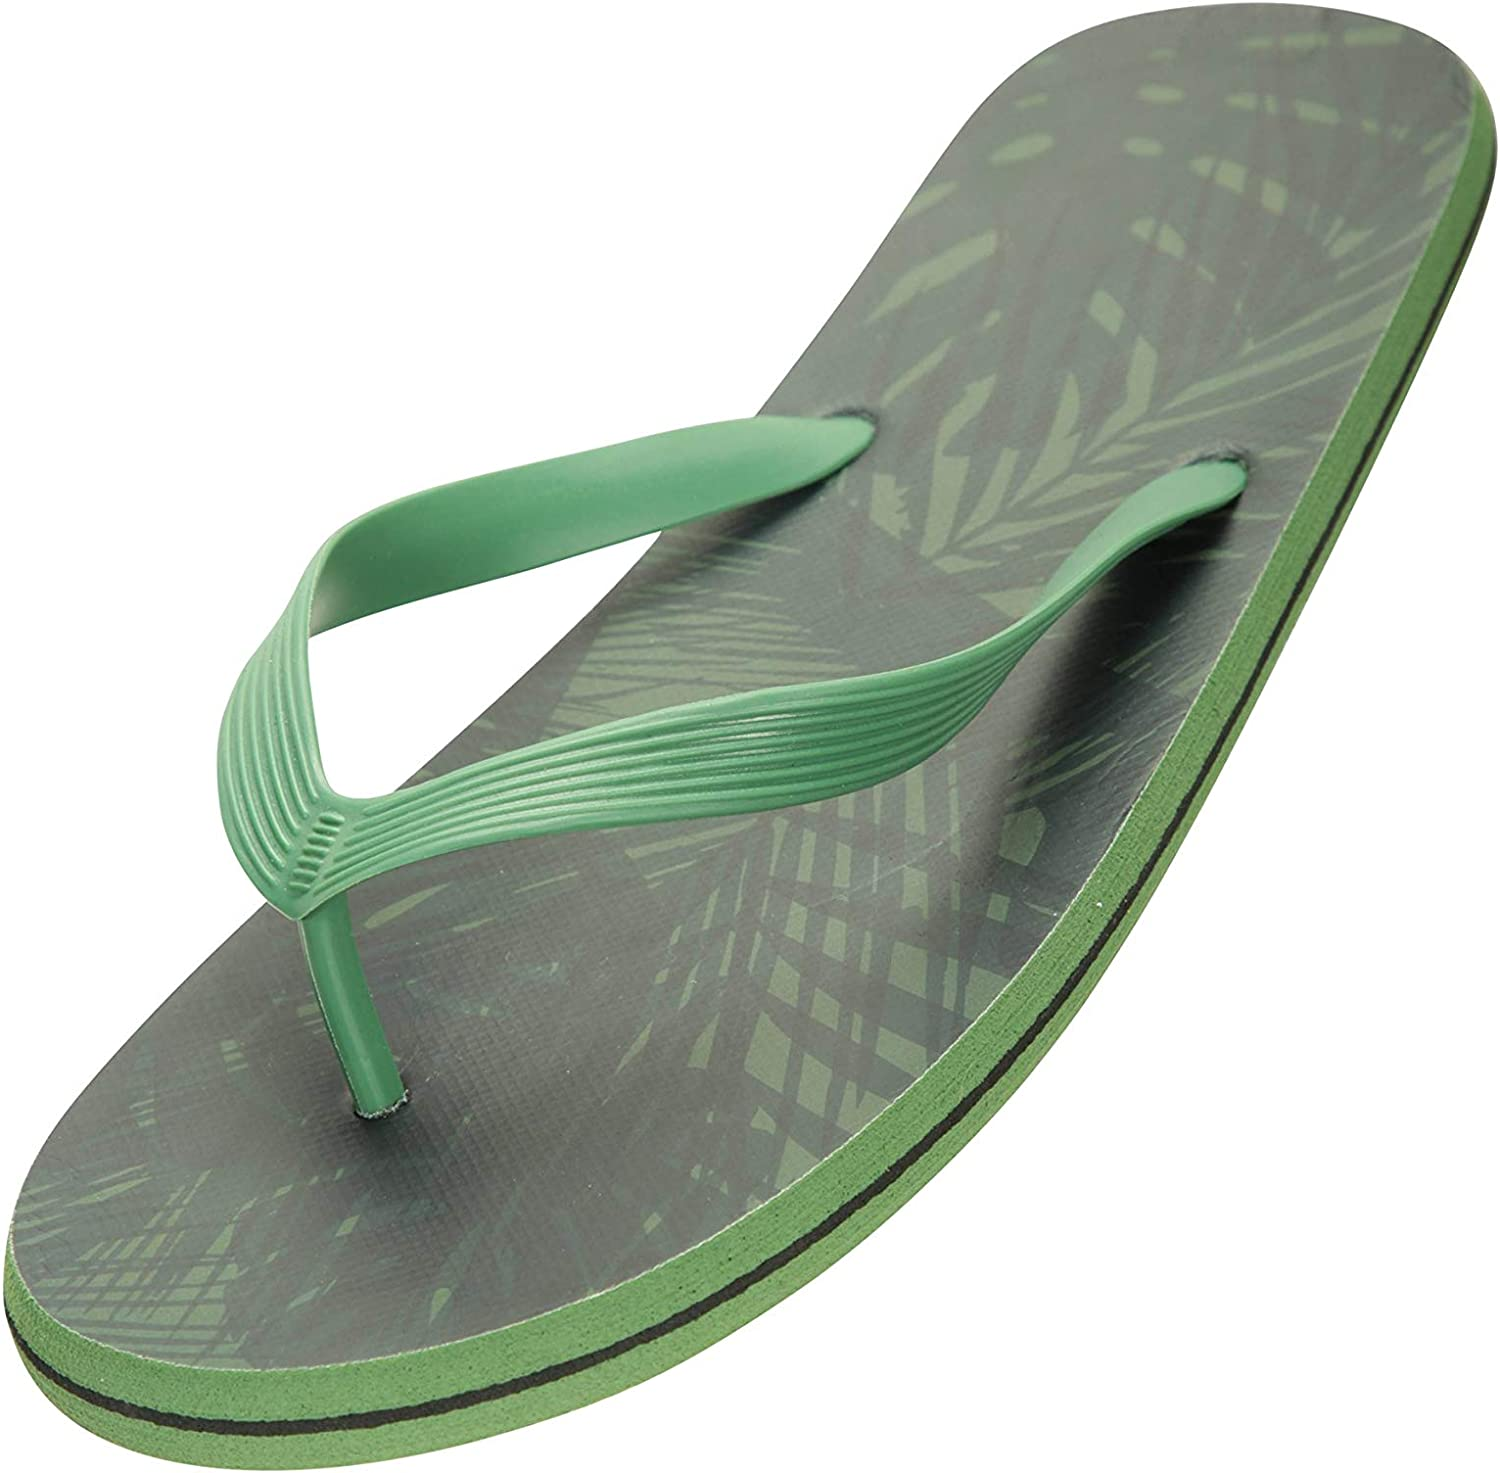 Slipon Summer Shoes -for Travelling Cosy Outsole Walking Beach Mountain Warehouse Beach Walk Mens Flip Flops Lightweight Sandals Classic Design Footwear Poolside